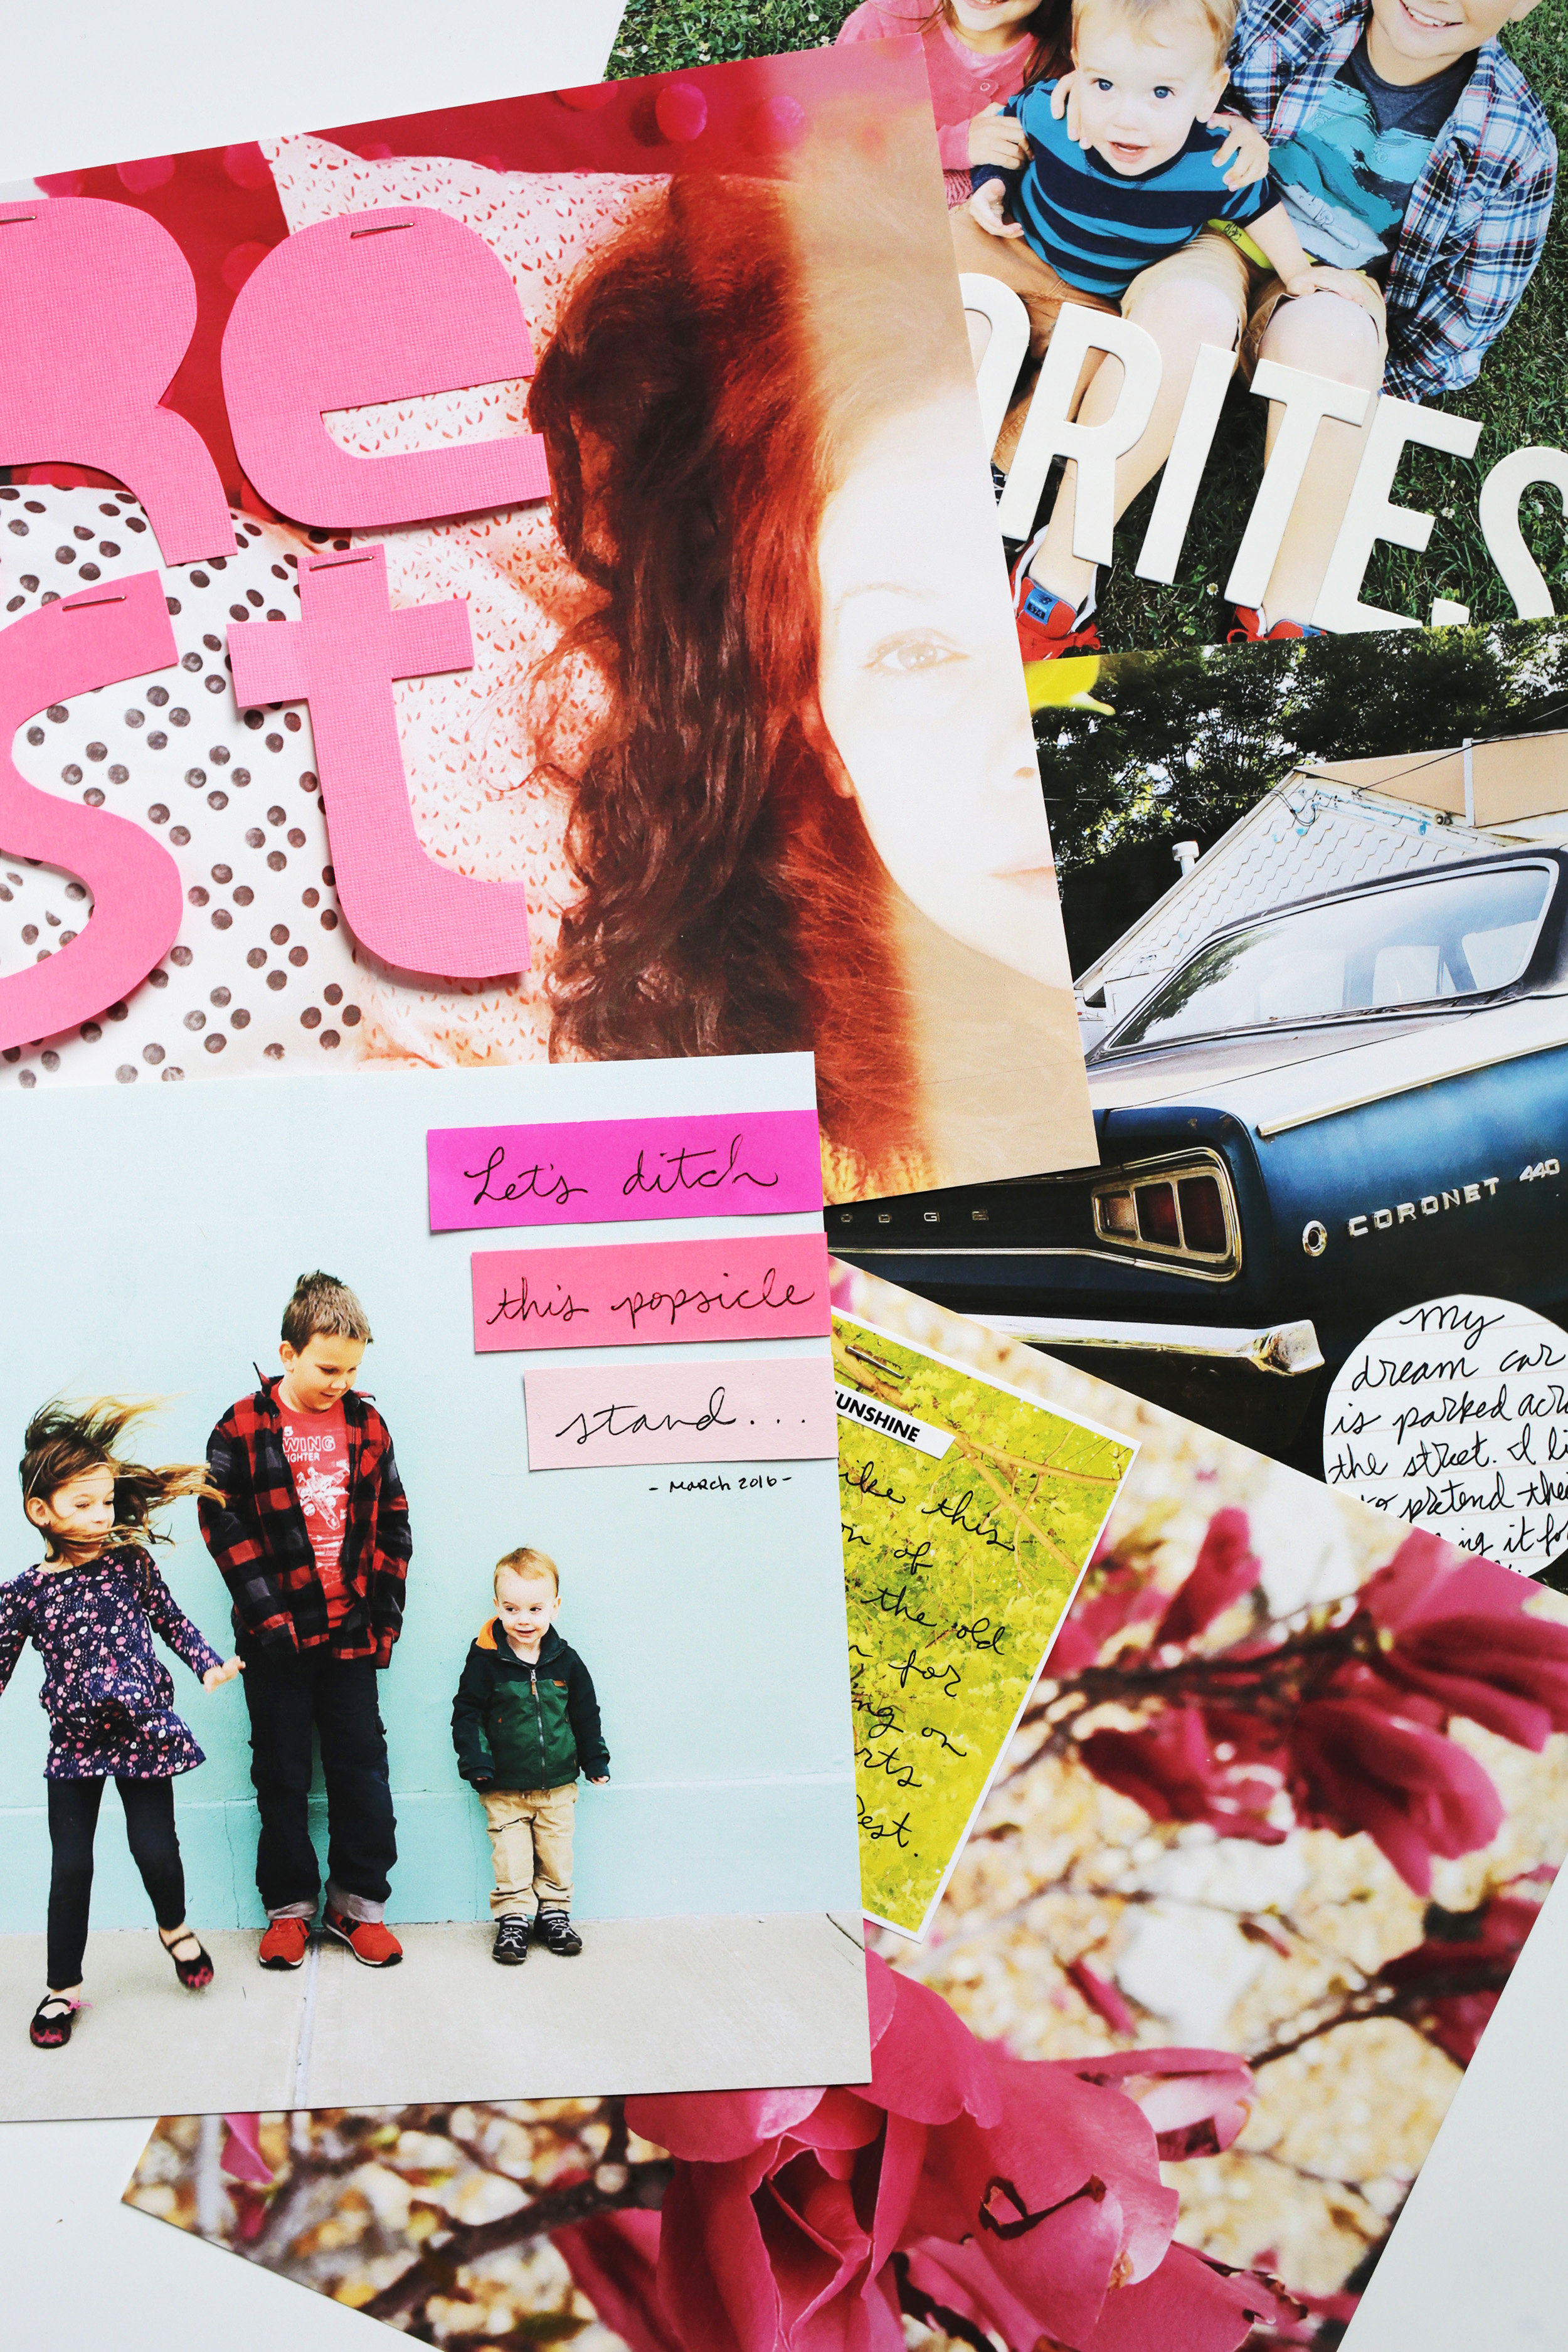 Simple scrapbook ideas using full page photos over at www.ABeautifulMess.com